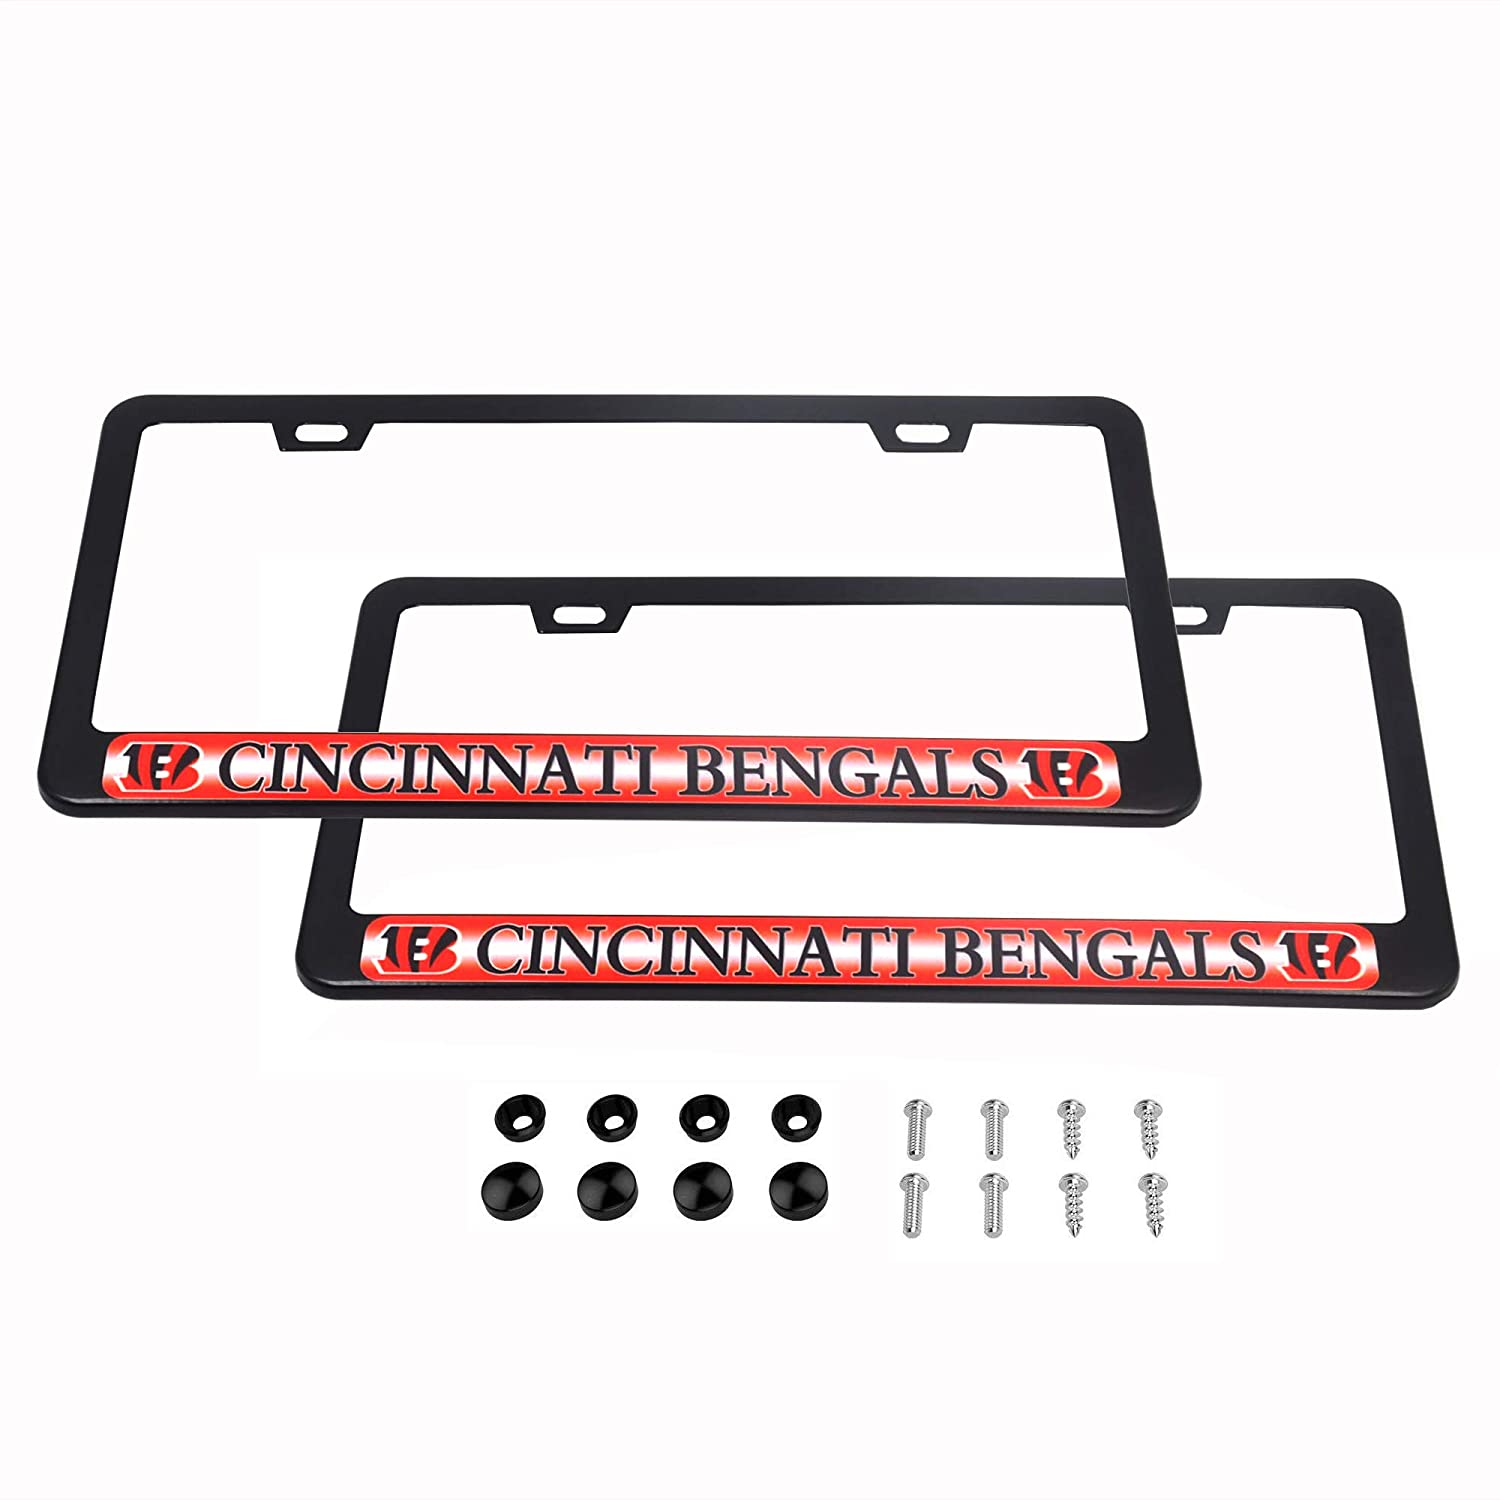 CHNNFC 2 Pack Luxury Stainless Steel License Plate Frame and Colored Auto Emblem